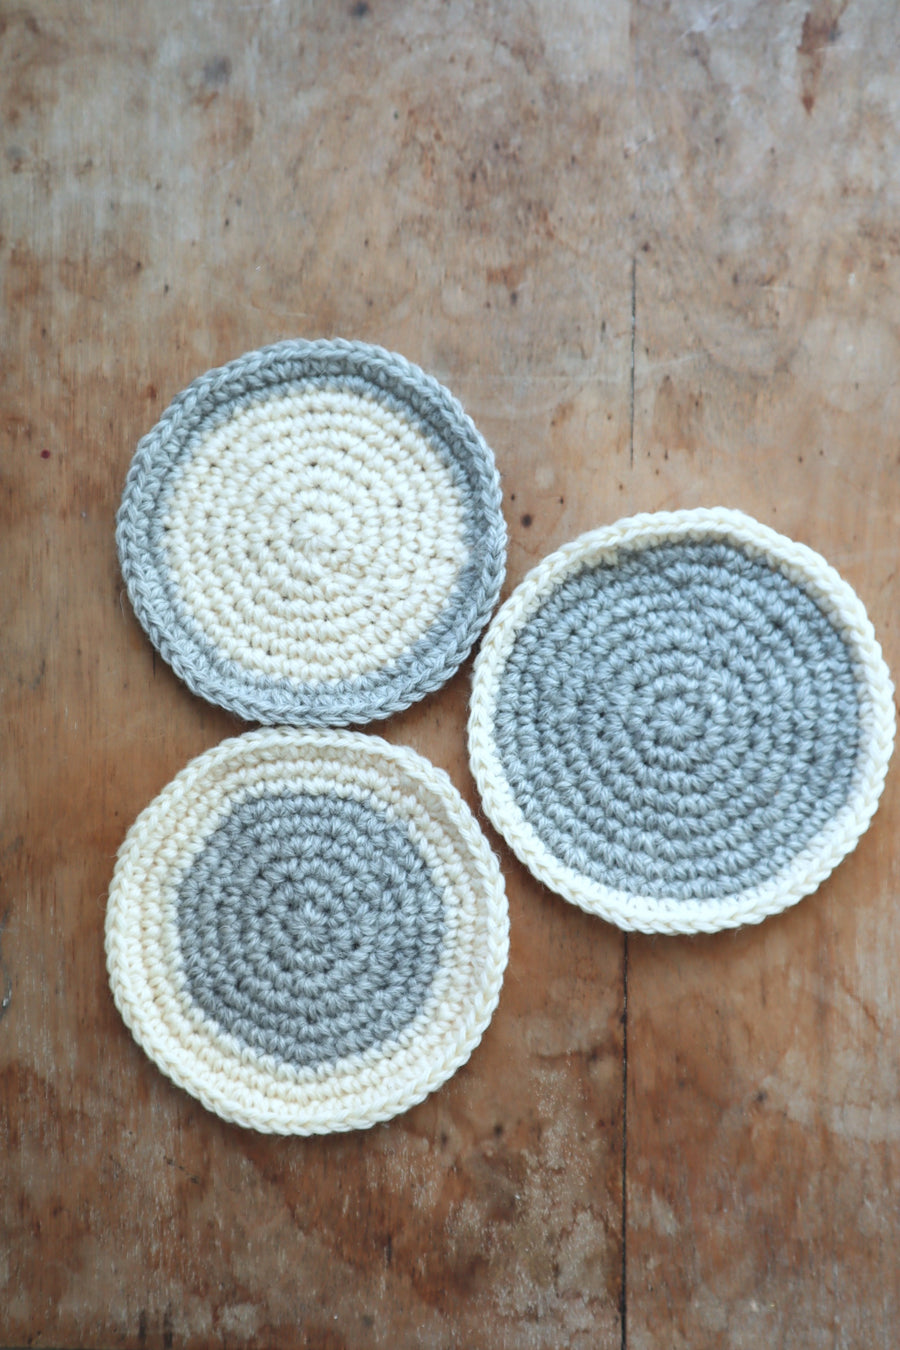 2/8 & 15 Saturdays Learn to Crochet - 2 sessions